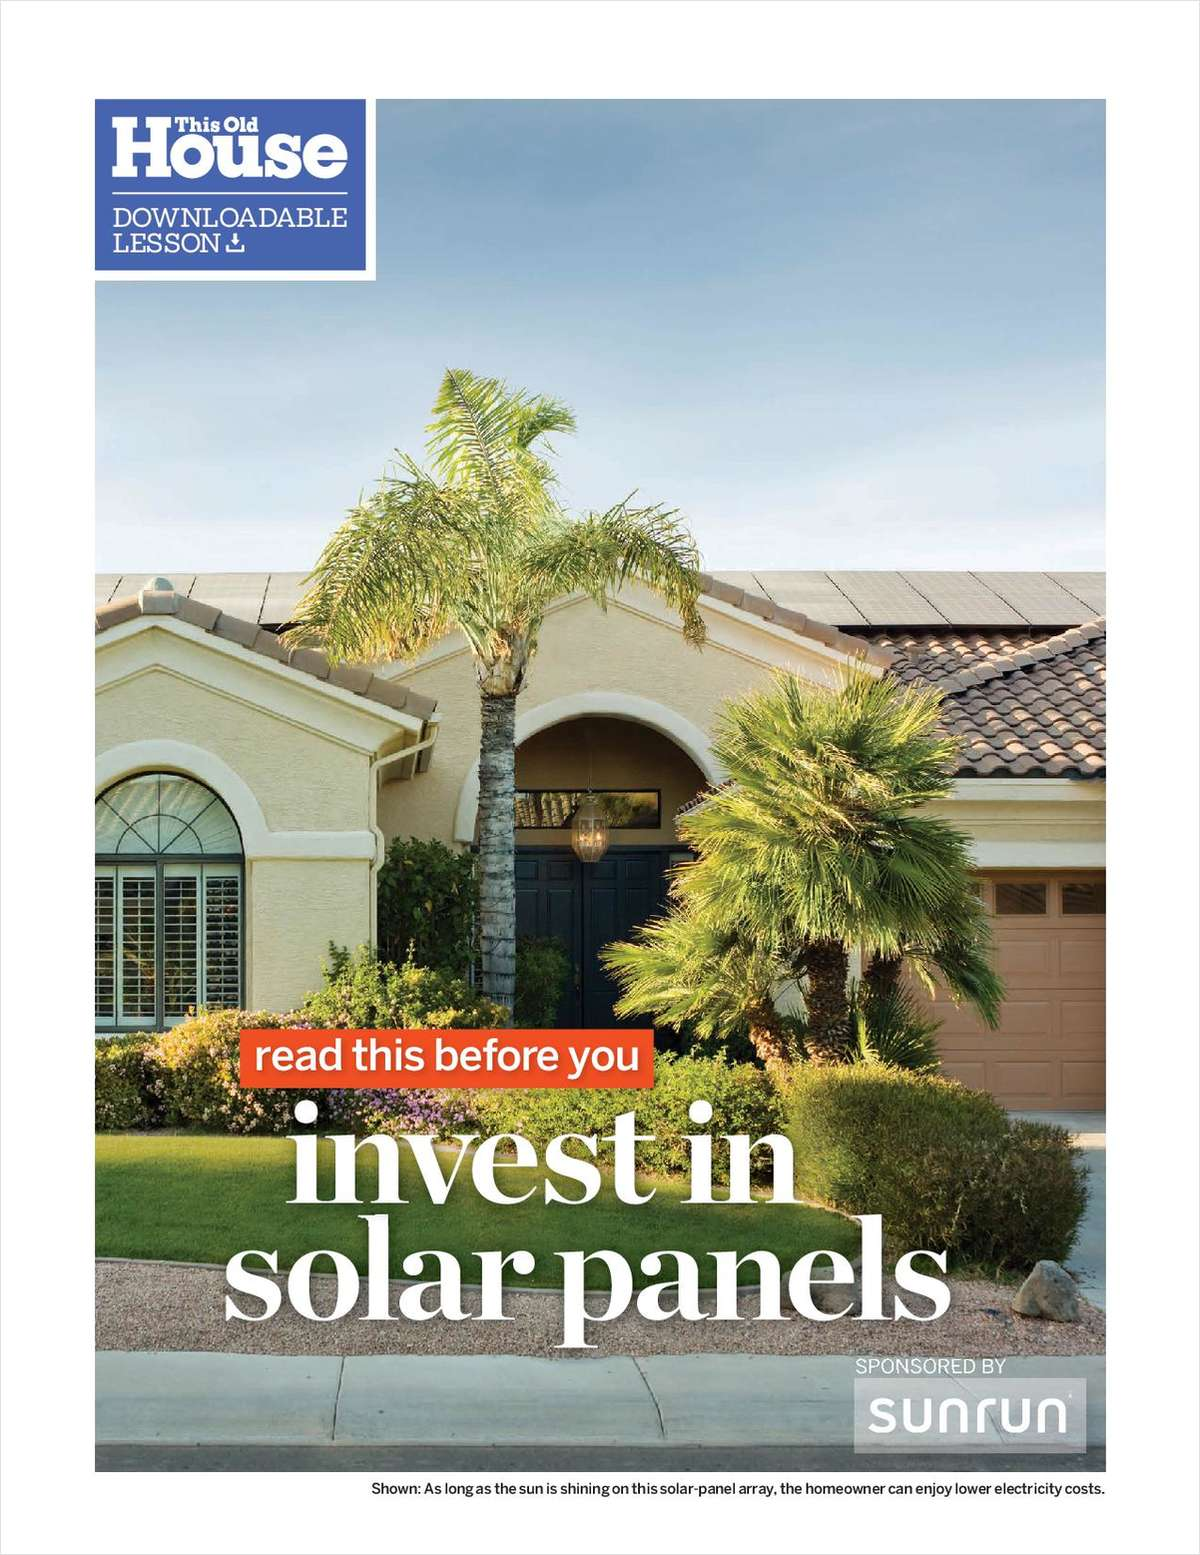 How to Invest in Solar Panels - a Free Downloadable Lesson from the Editors of ThisOldHouse.com